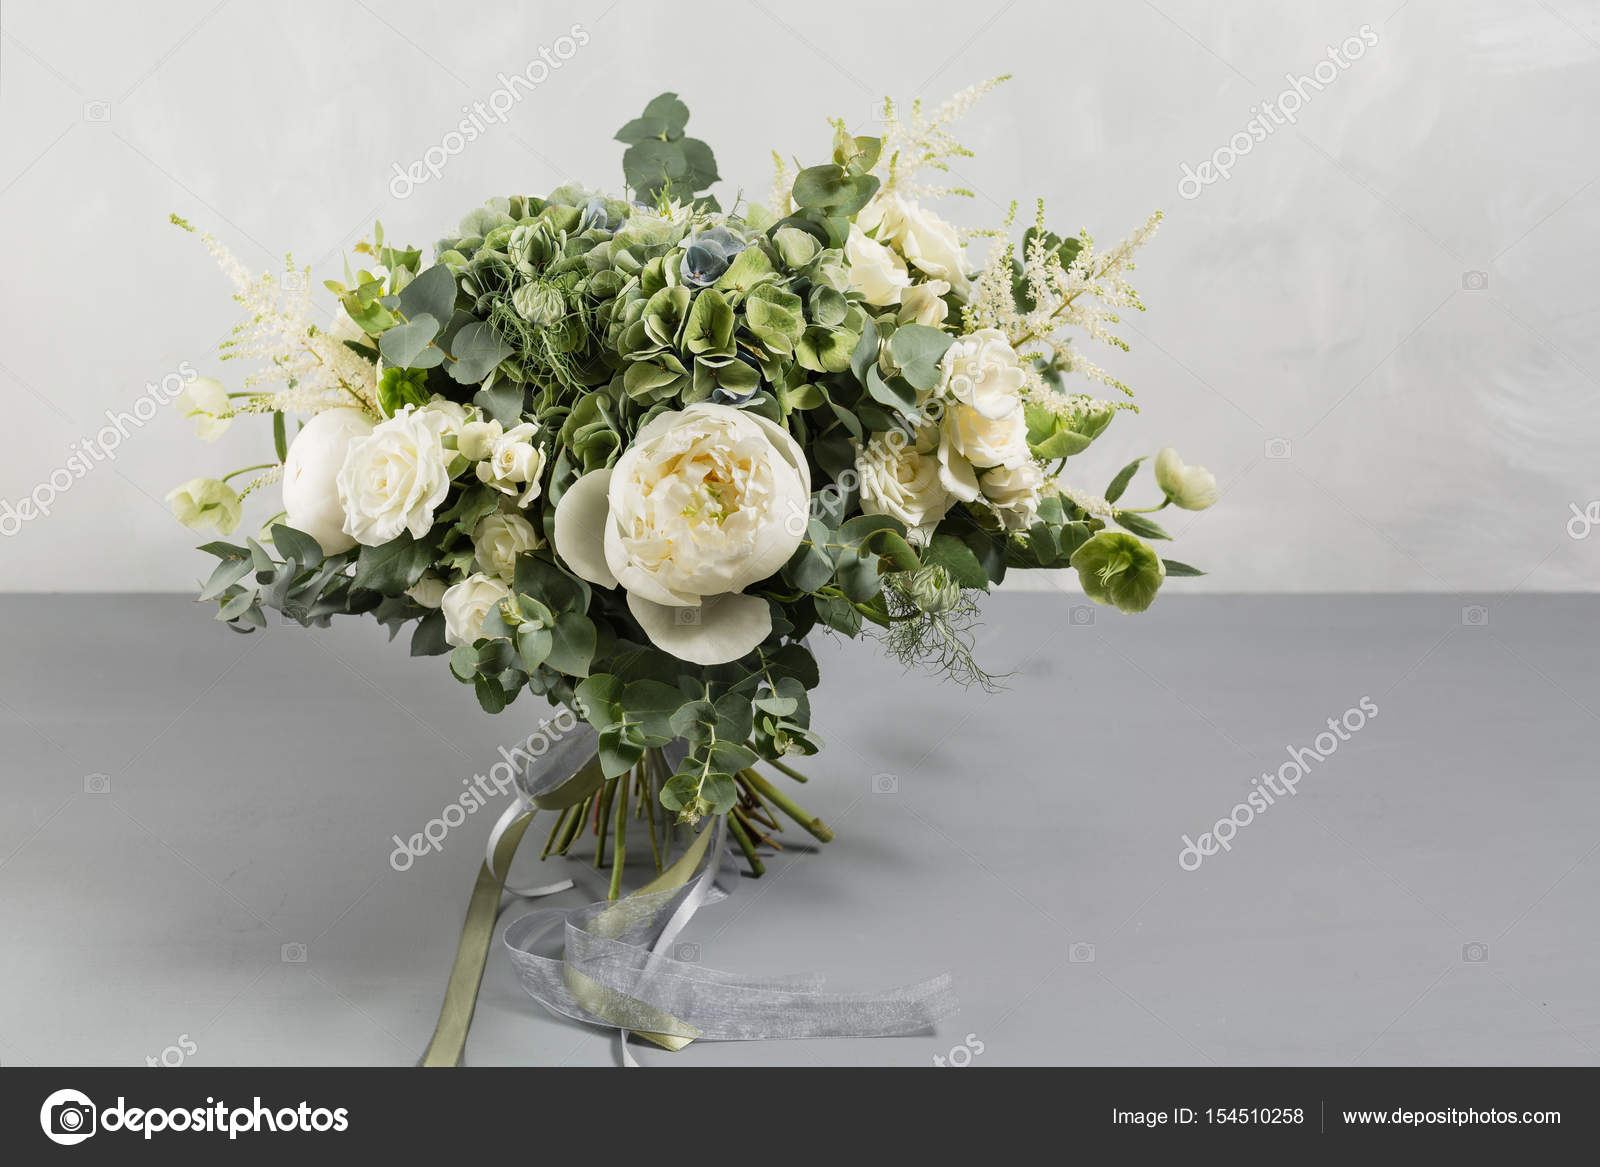 Bridal vintage bouquet the brides beautiful of mixed flowers and bridal vintage bouquet the brides beautiful of mixed flowers and greenery decorated with izmirmasajfo